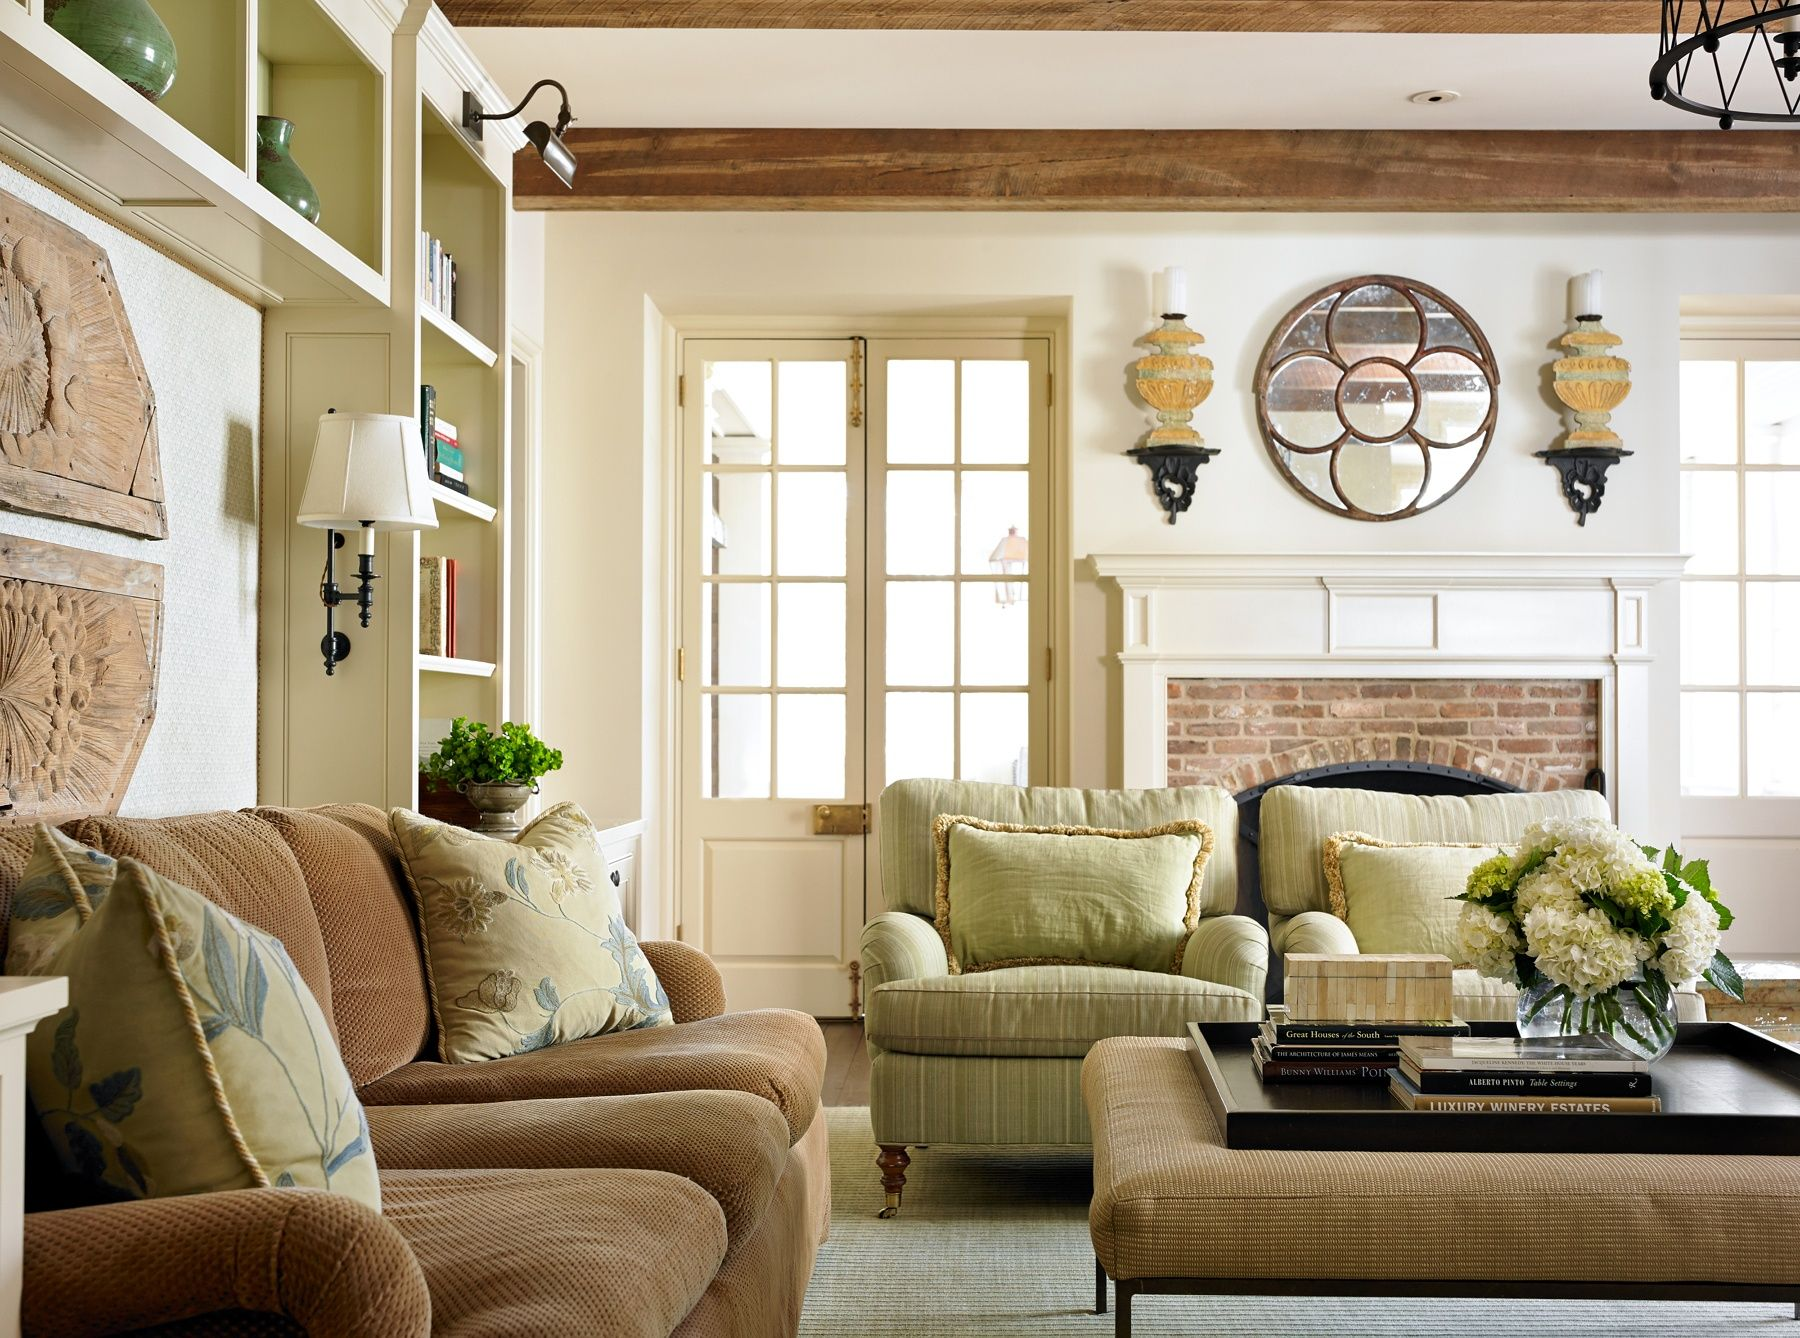 12 Things Every Living Room Needs to Be Complete | Luxury ...